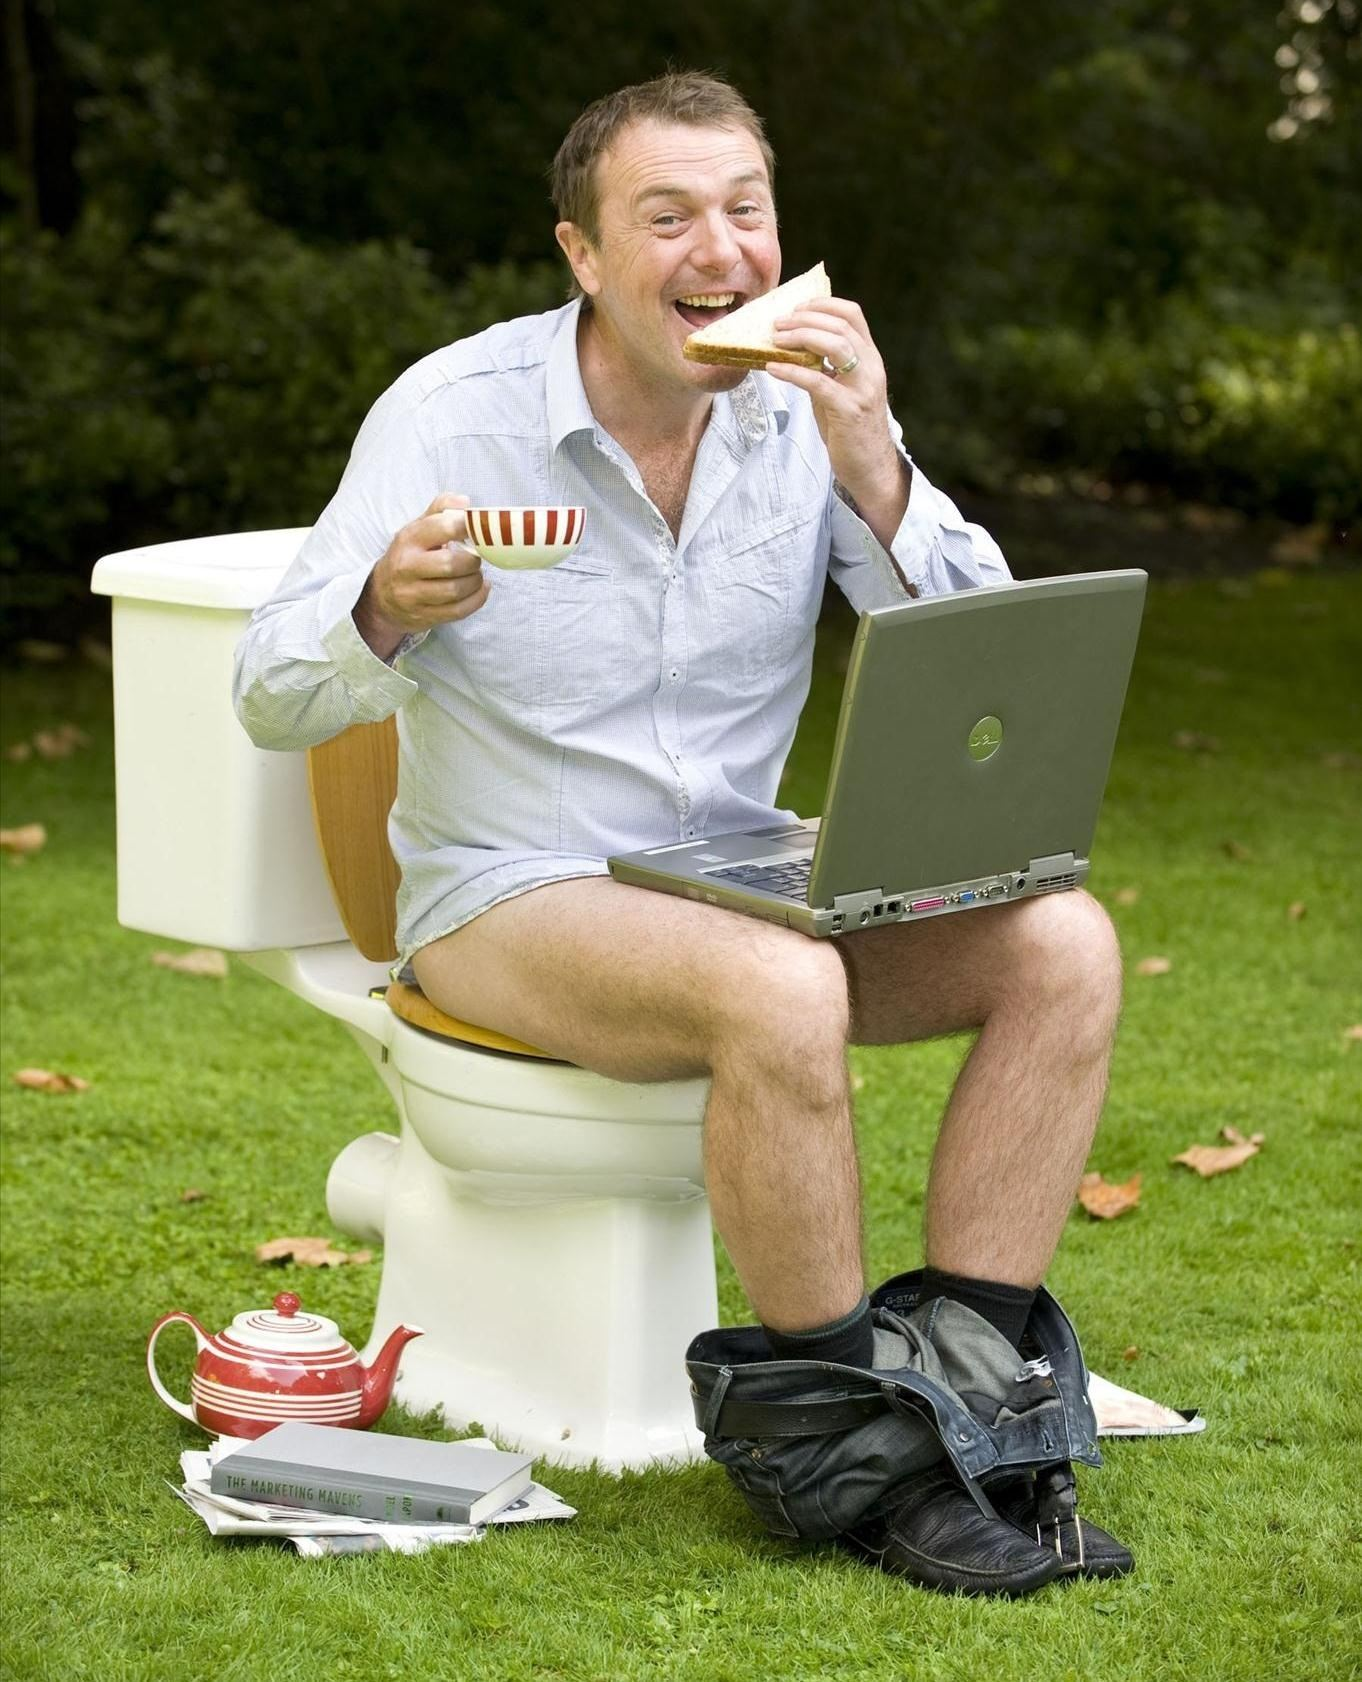 Health Alert: You're Taking a Crap Wrong! This Is How You Poop Properly